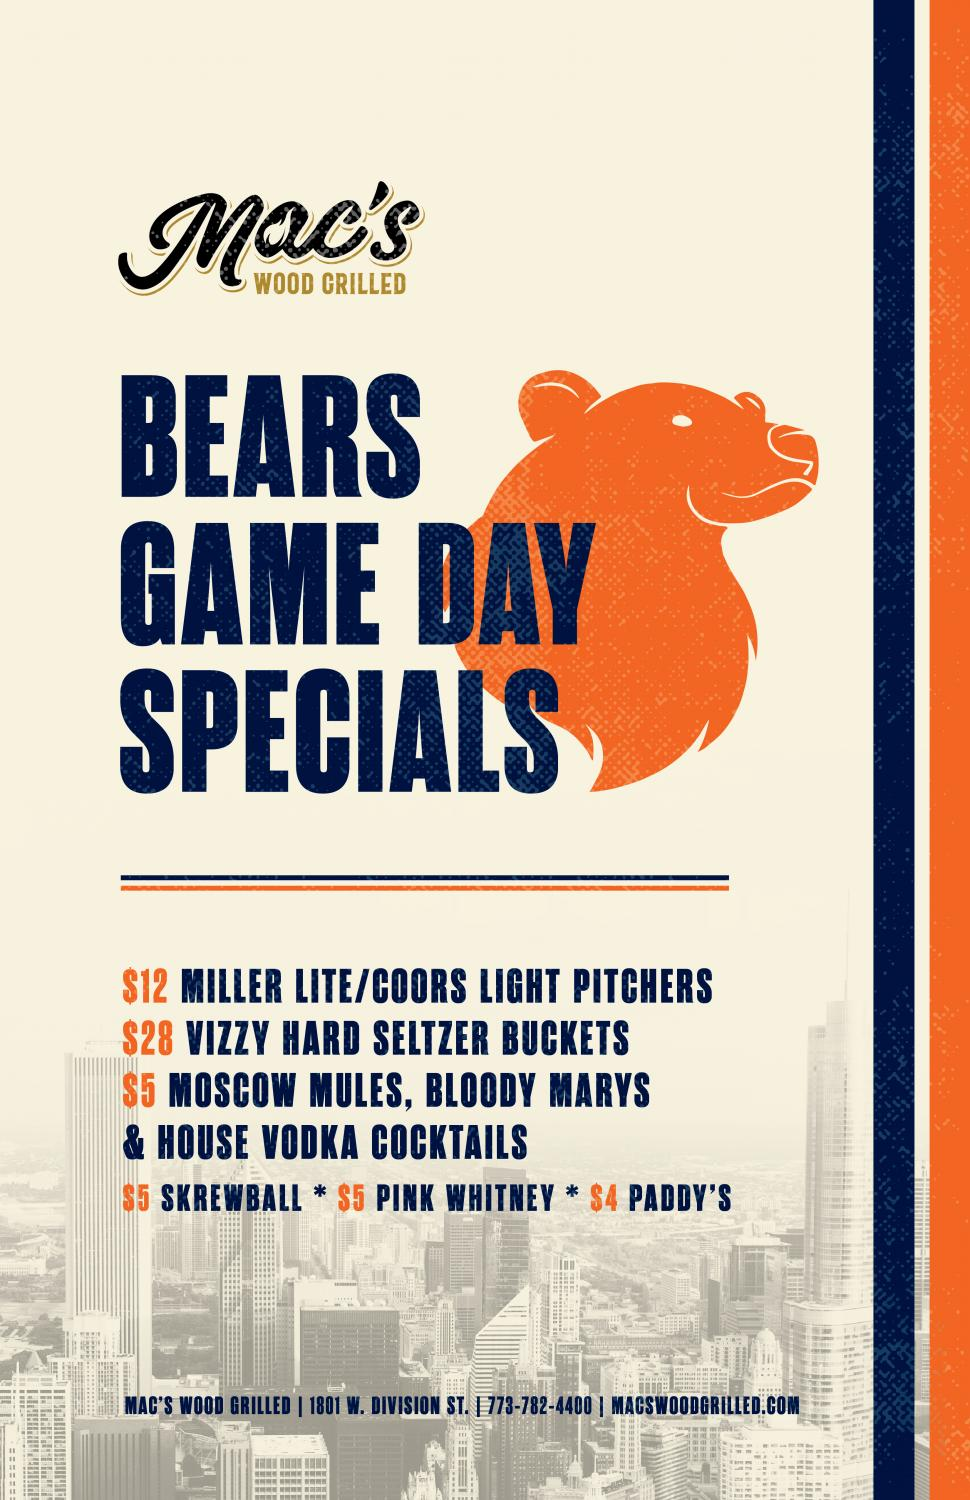 Chicago Bears Game Day Specials at Mac's Wood Grilled